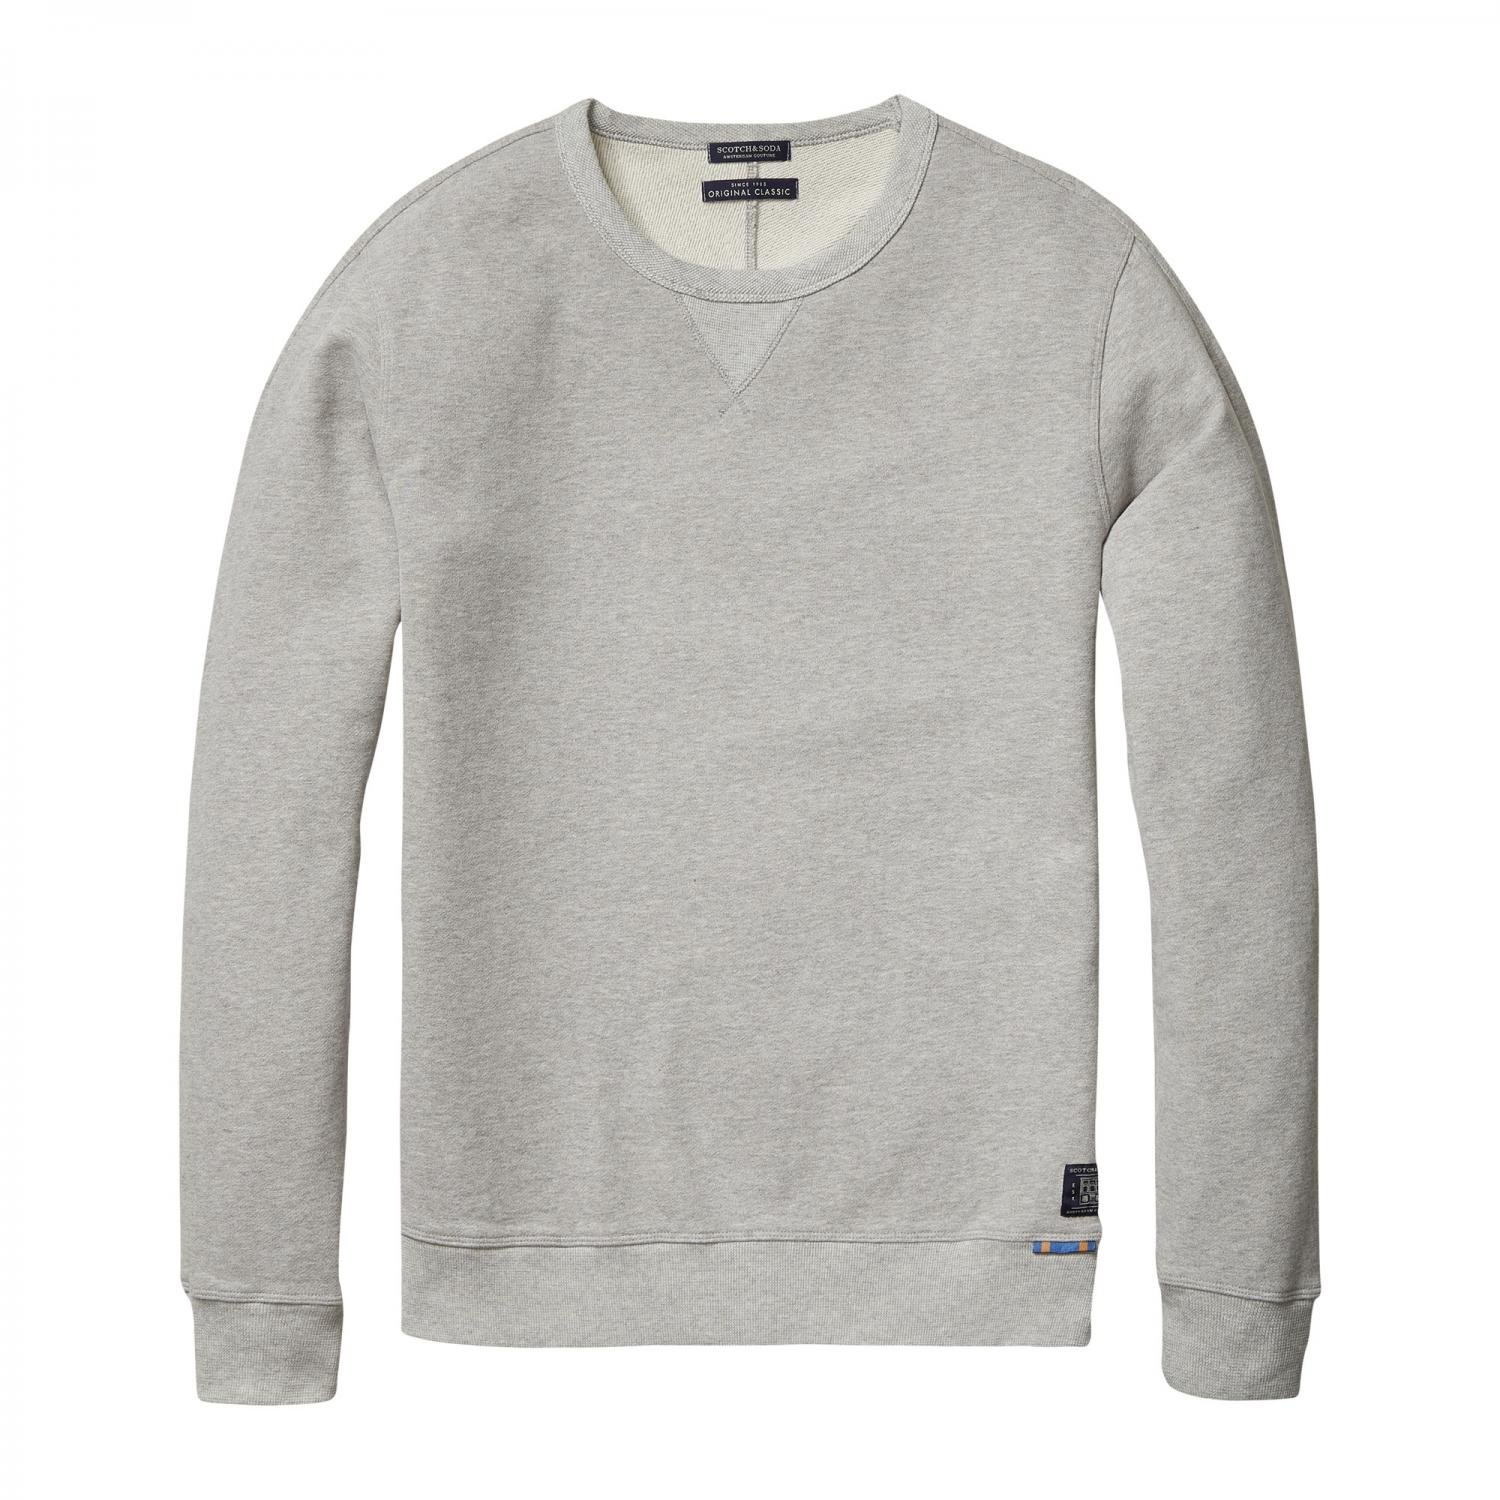 Scotch & Soda Herren Pullover Crewneck Sweater 101497 Grey Melange XL